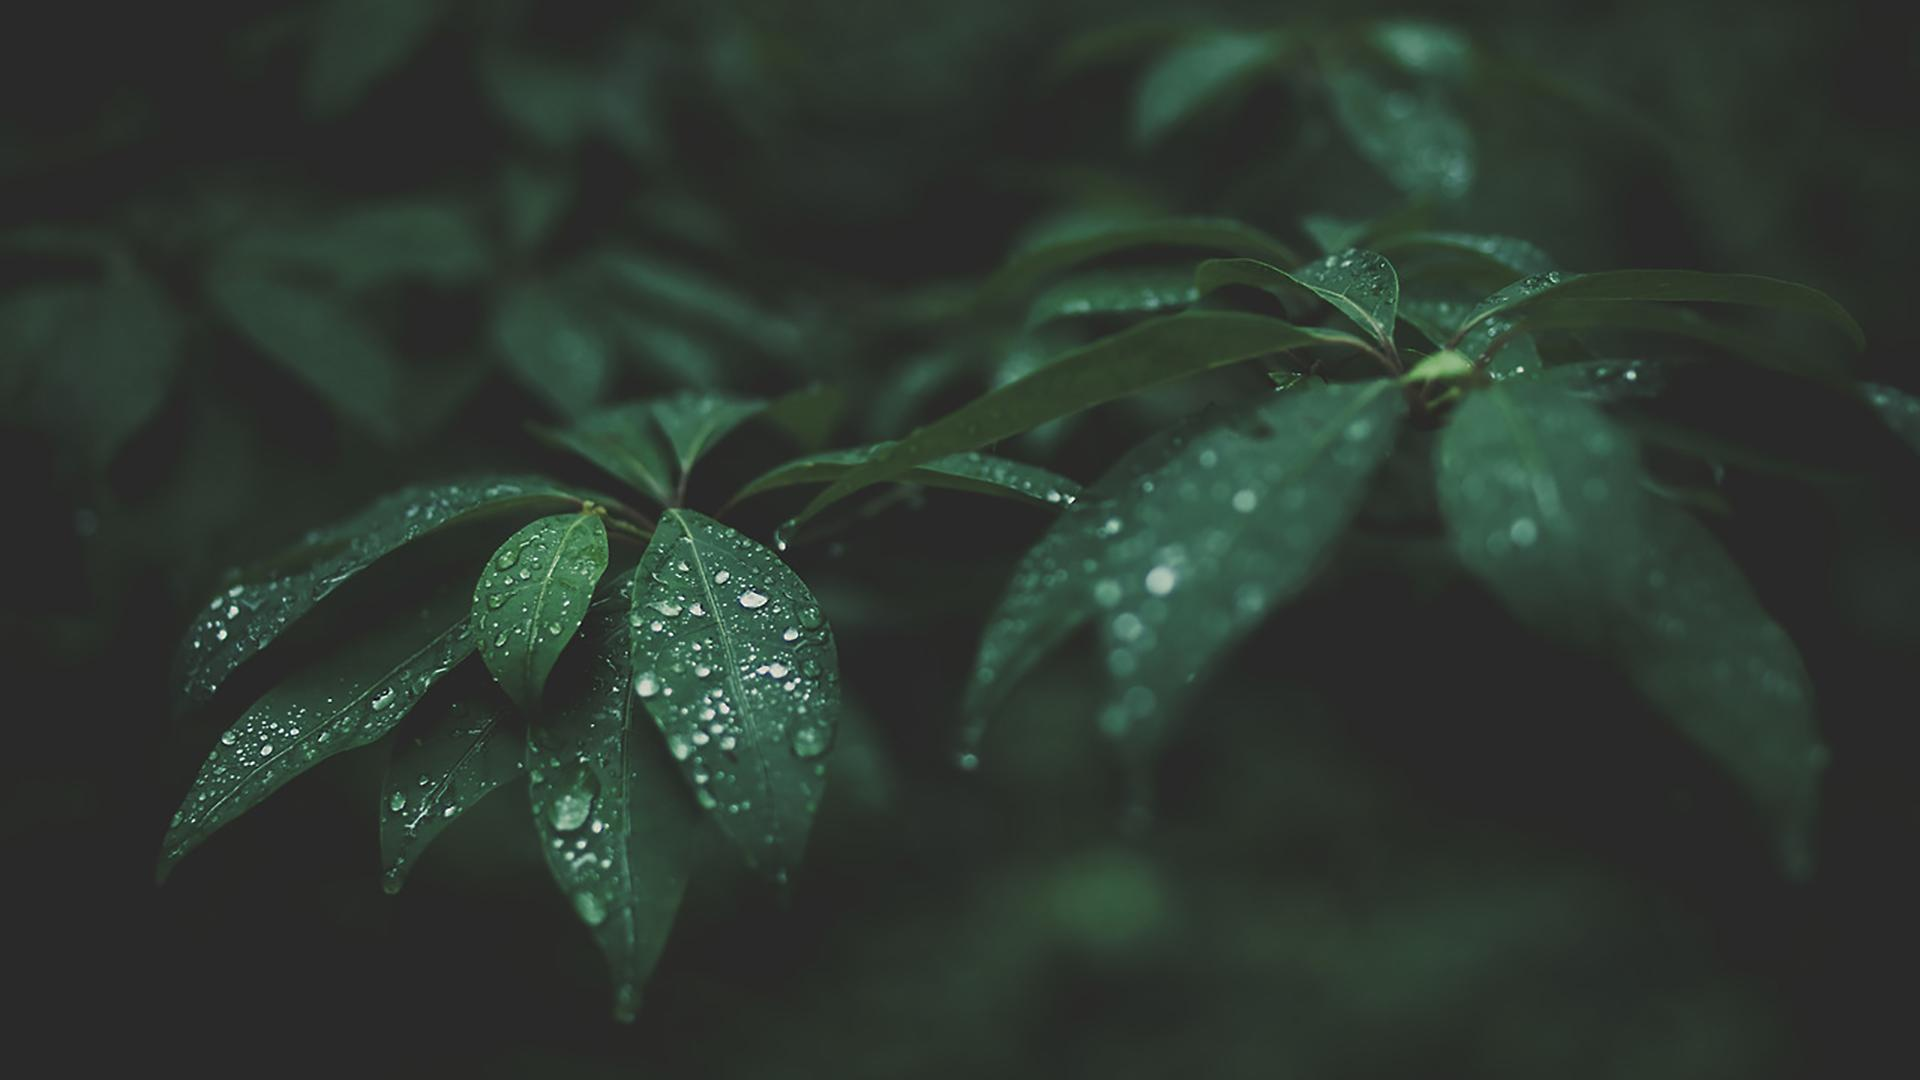 Wet Leafs Wallpaper Macro Photography 1920x1080 Download Hd Wallpaper Wallpapertip